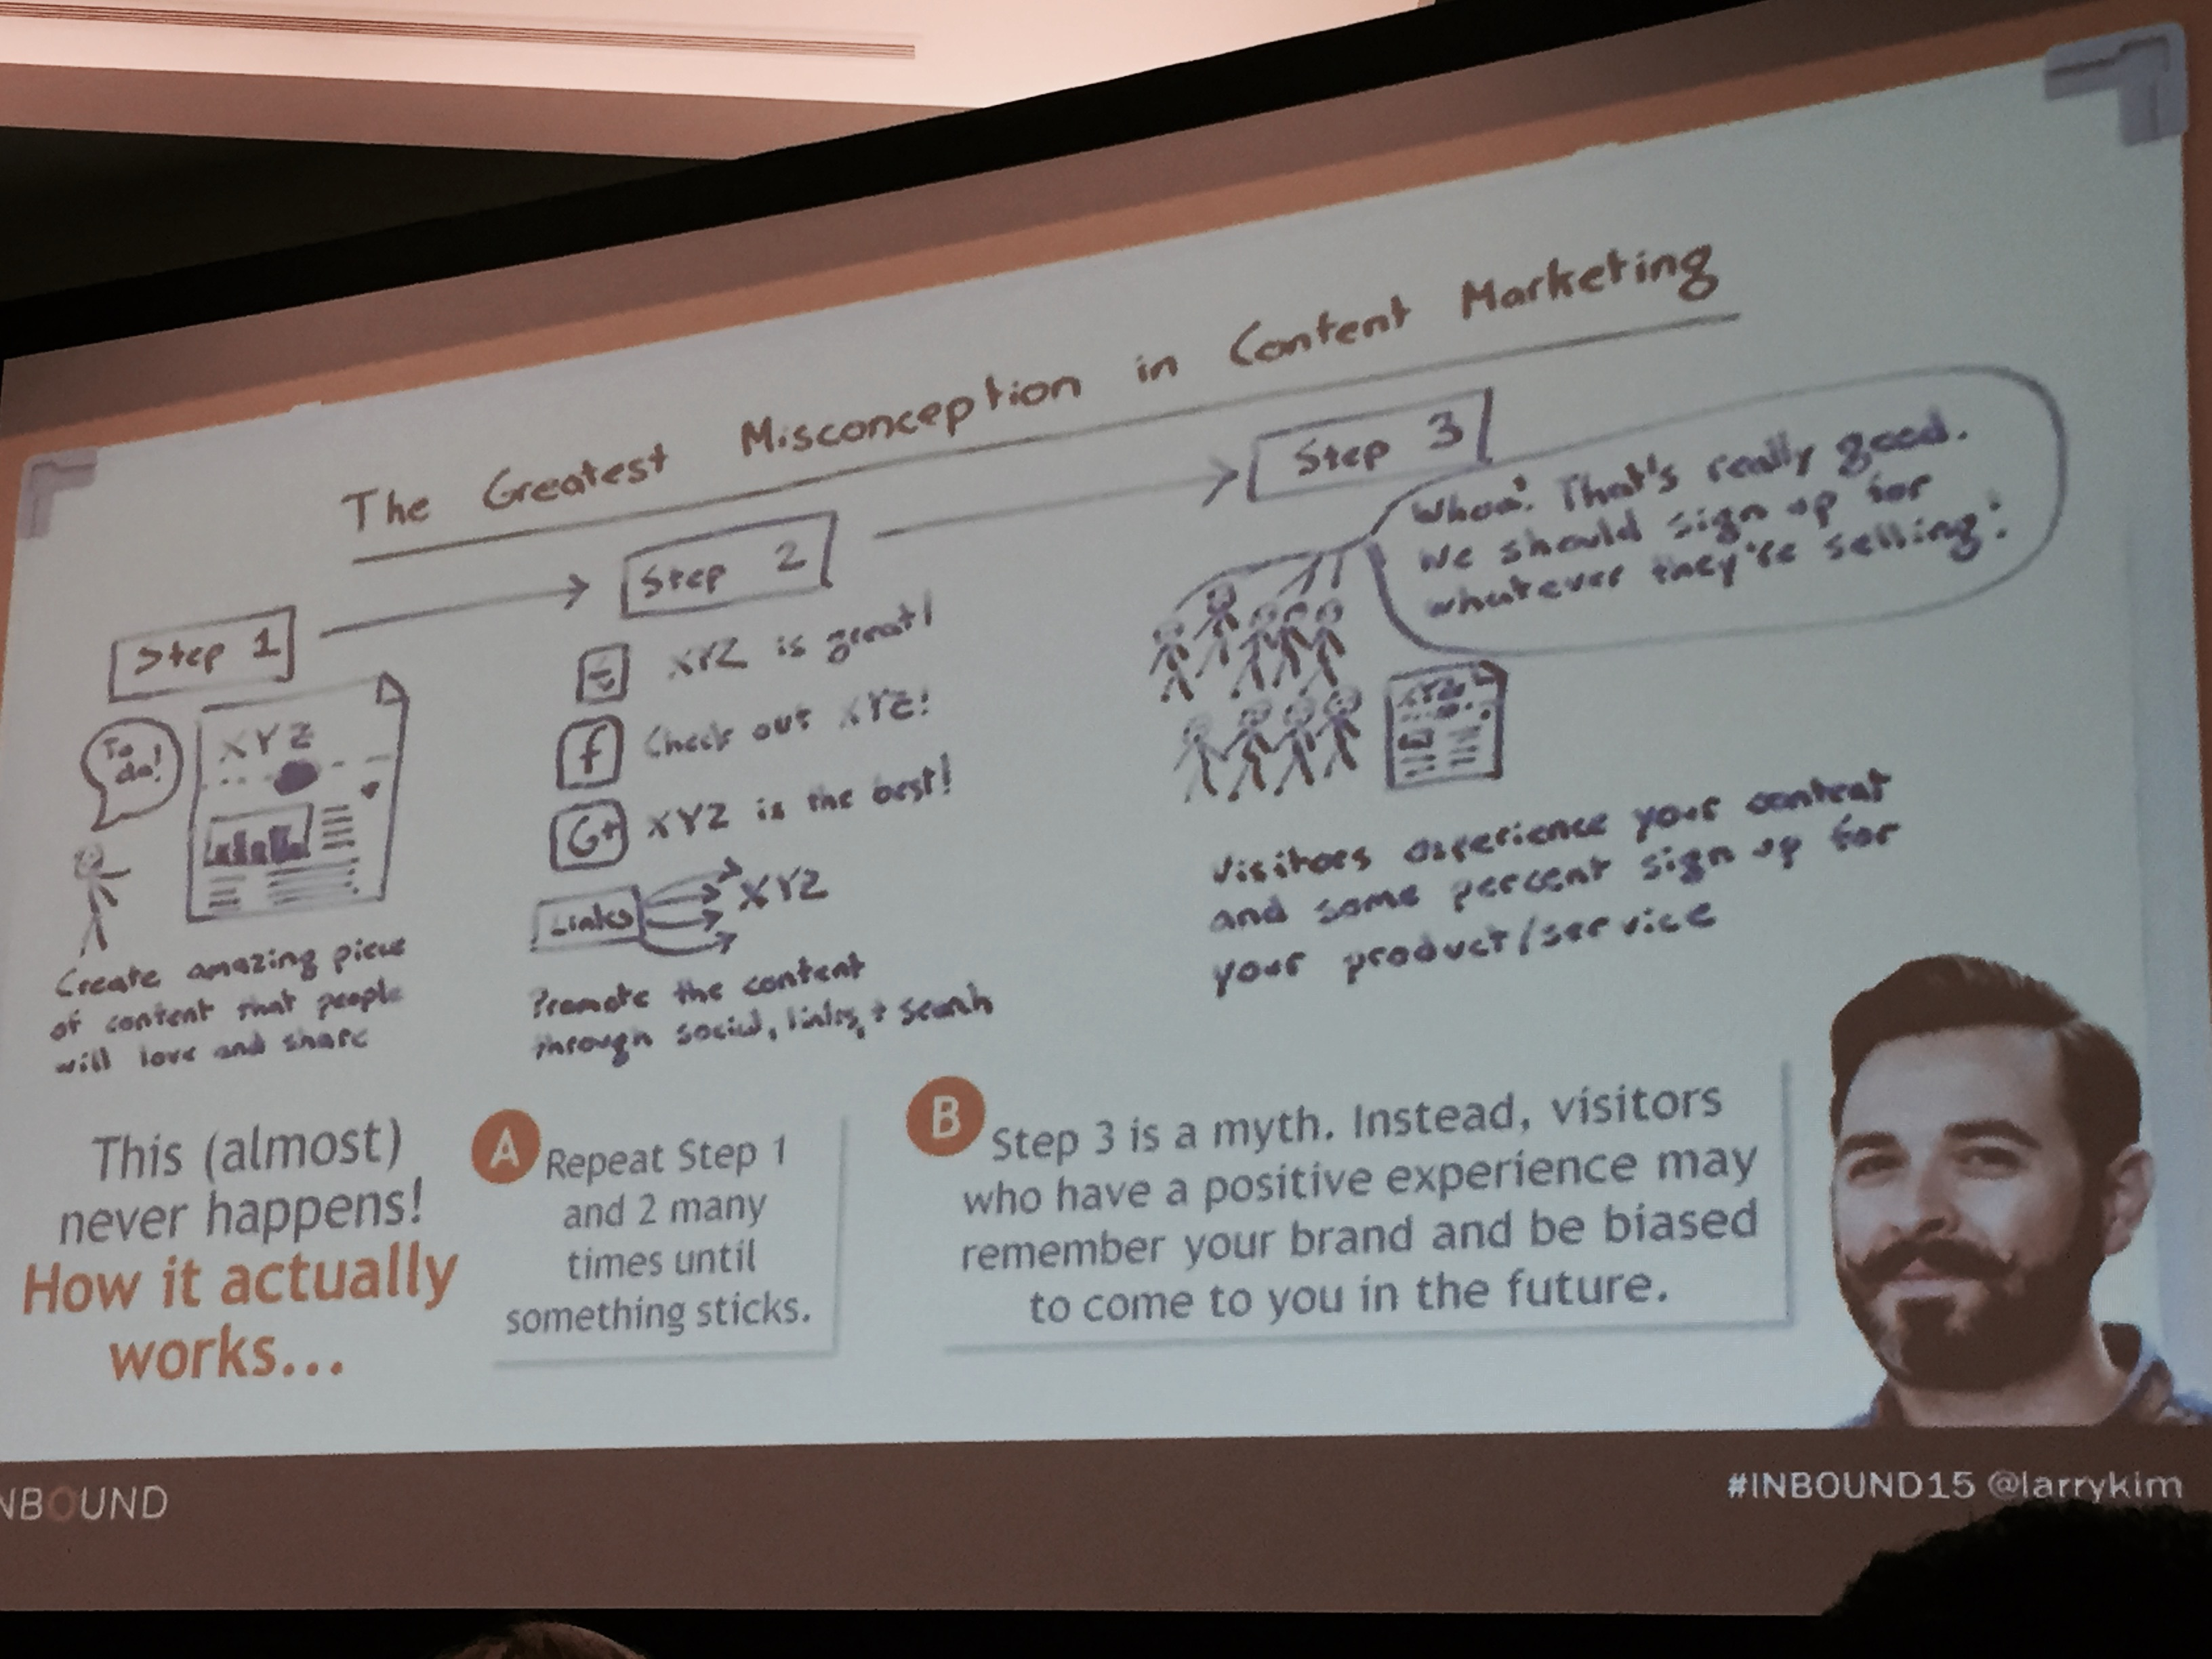 The Greatest Misconception in Content Marketing - Rand Fishkin (INBOUND15)